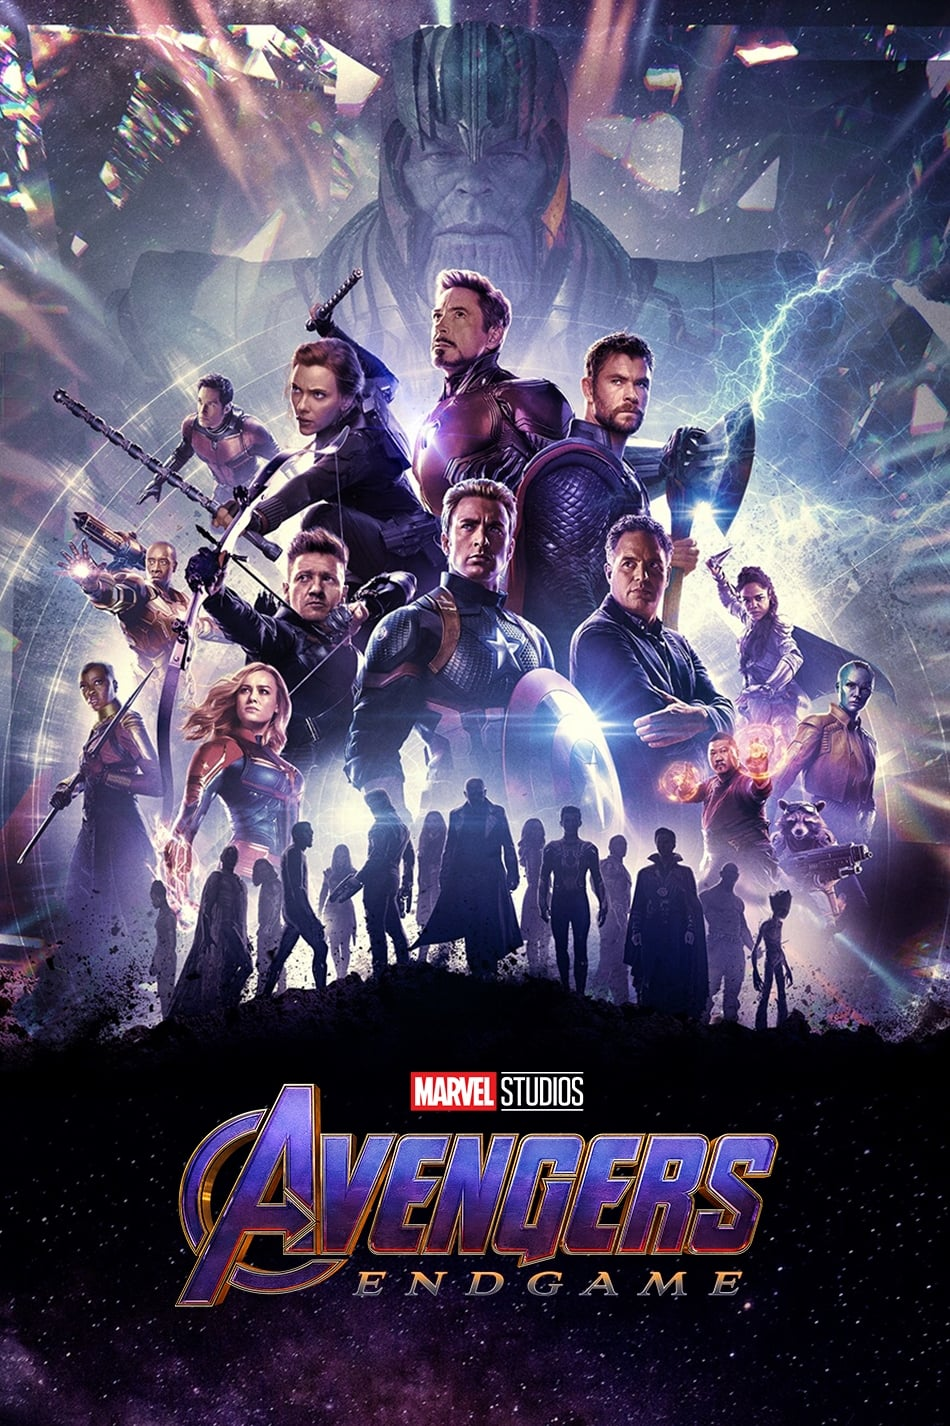 Avengers: Endgame (2019) English [4k 2160p Ultra HD] | 32.1 GB | Download | Watch Online | Direct Links | GDrive